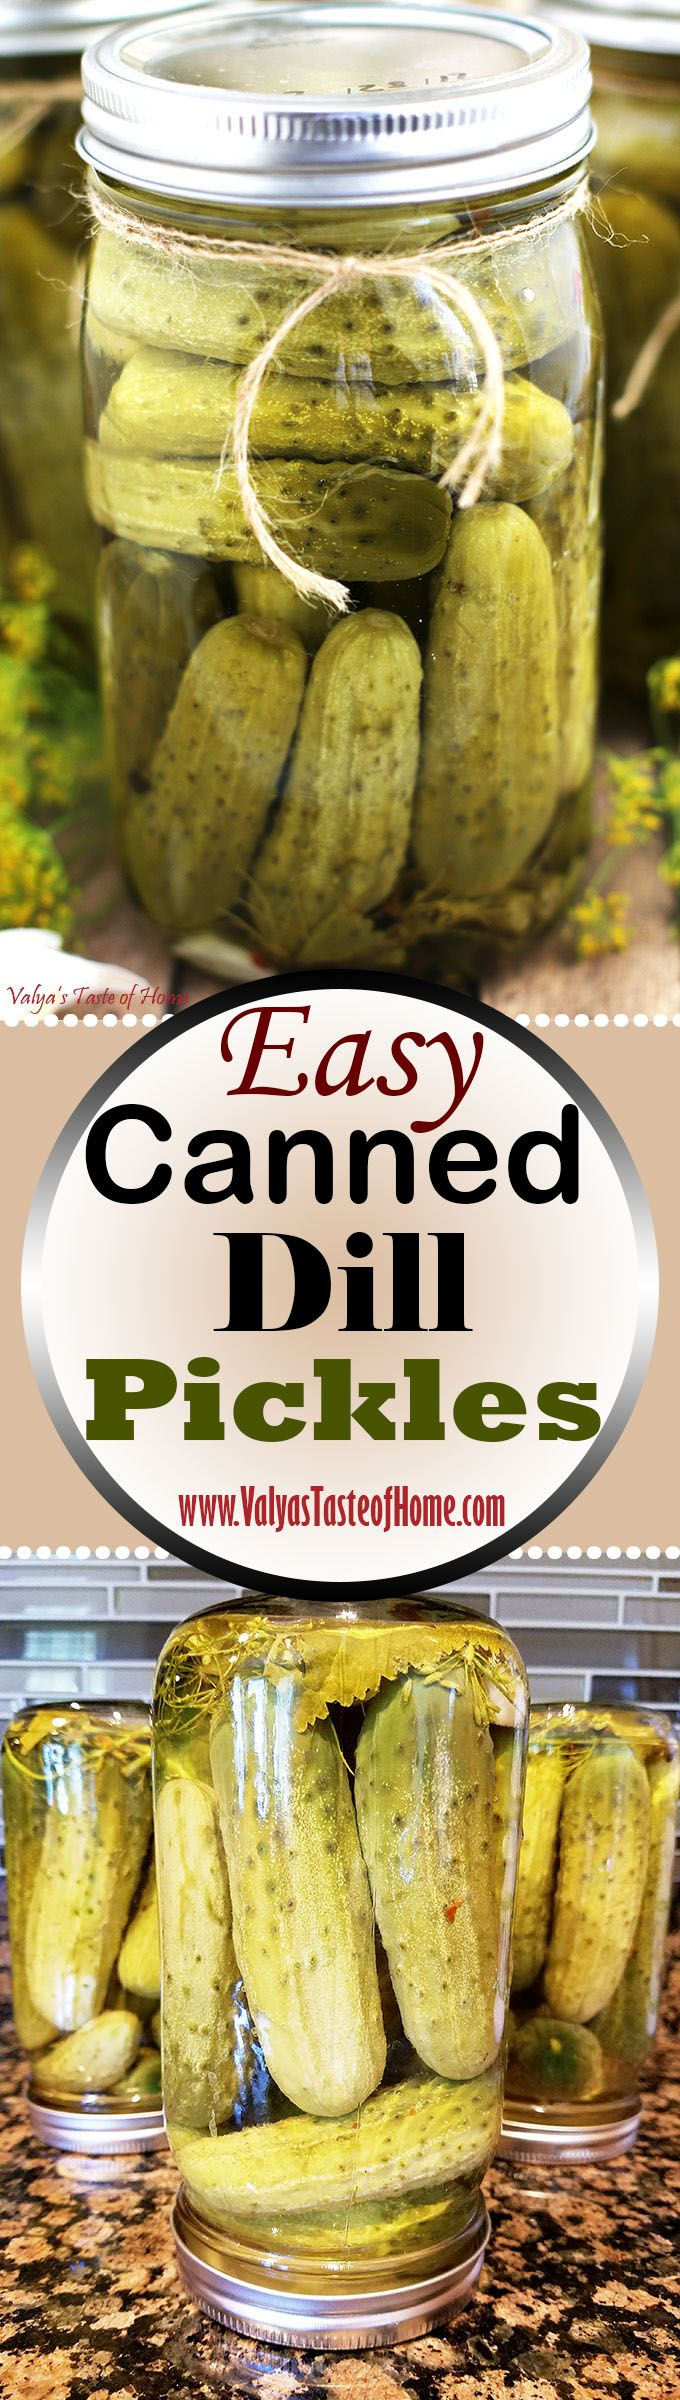 These pickles are crunchy and salty. I've always enjoyed them on the savory side more than the delicious side. I have tried pickles made more on the sweet side and enjoyed by other, but I just prefer my mom's recipe. Of course, right? These pickles truly are tasty, crisp and rich. They're fantastic in my potato salad (Olive). They add that salty/sour taste. Also, a great side for just about anything plov, potato dishes, eggs, etc… | www.valyastasteofhome.com